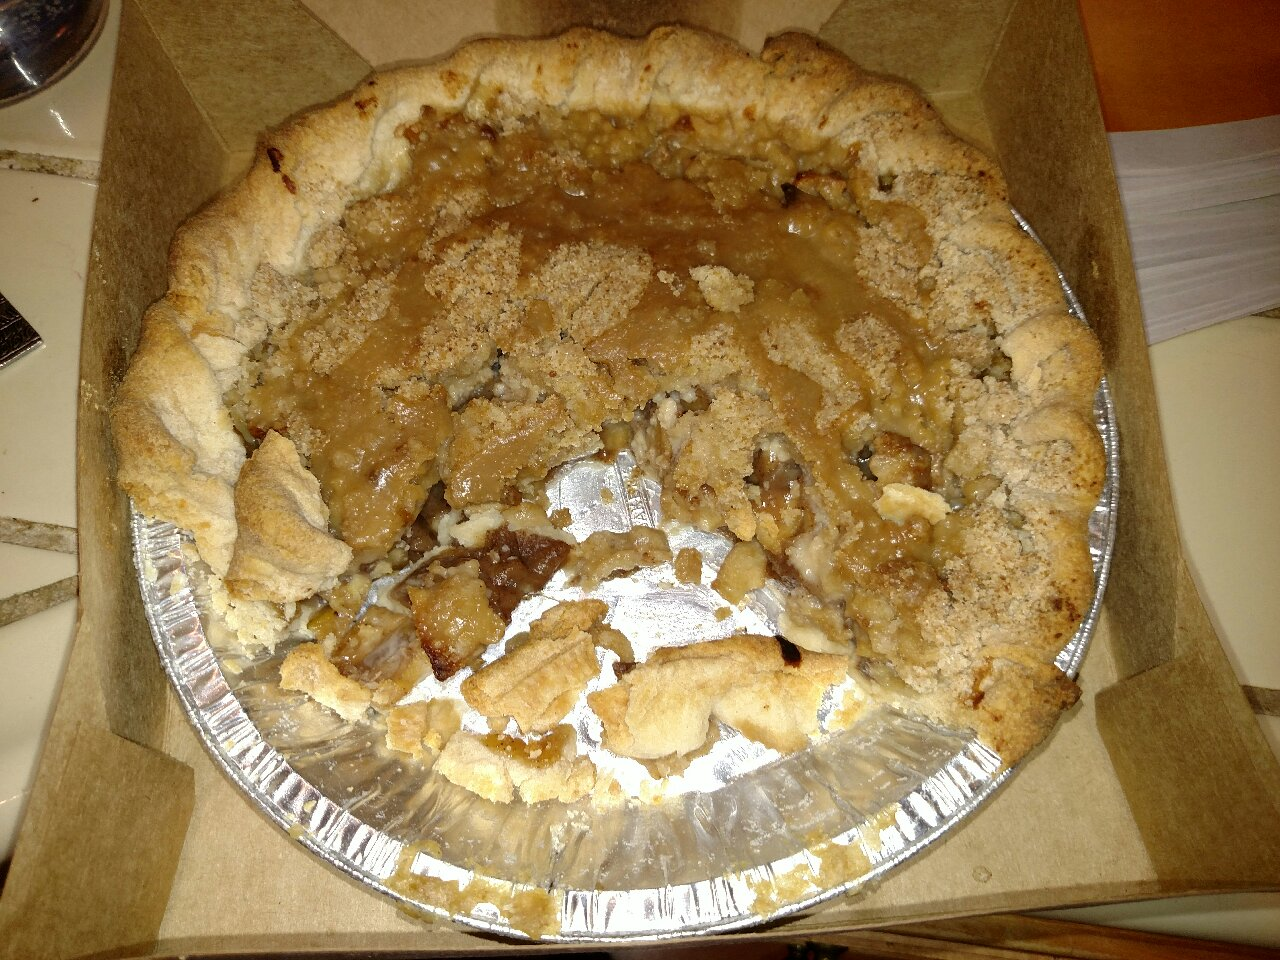 These local girls make killer pies, you will not be disappointed ... www.wildflowerbakes.com.